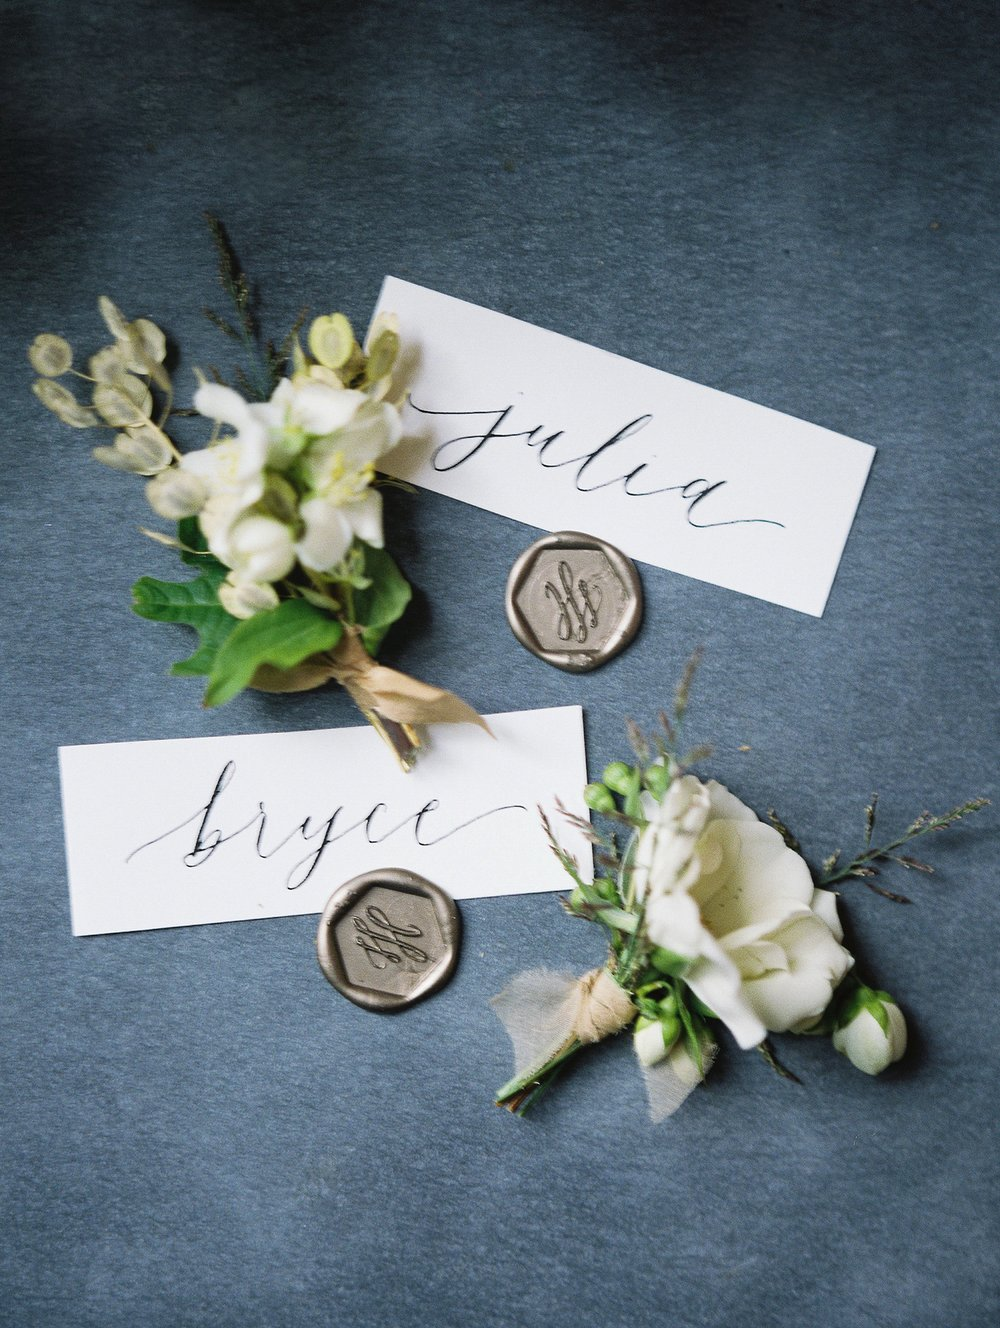 Calligraphy by Jennifer Bianca Calligraphy | wedding day detail photo | Vancouver Wedding Photographer Keila Marie Photography